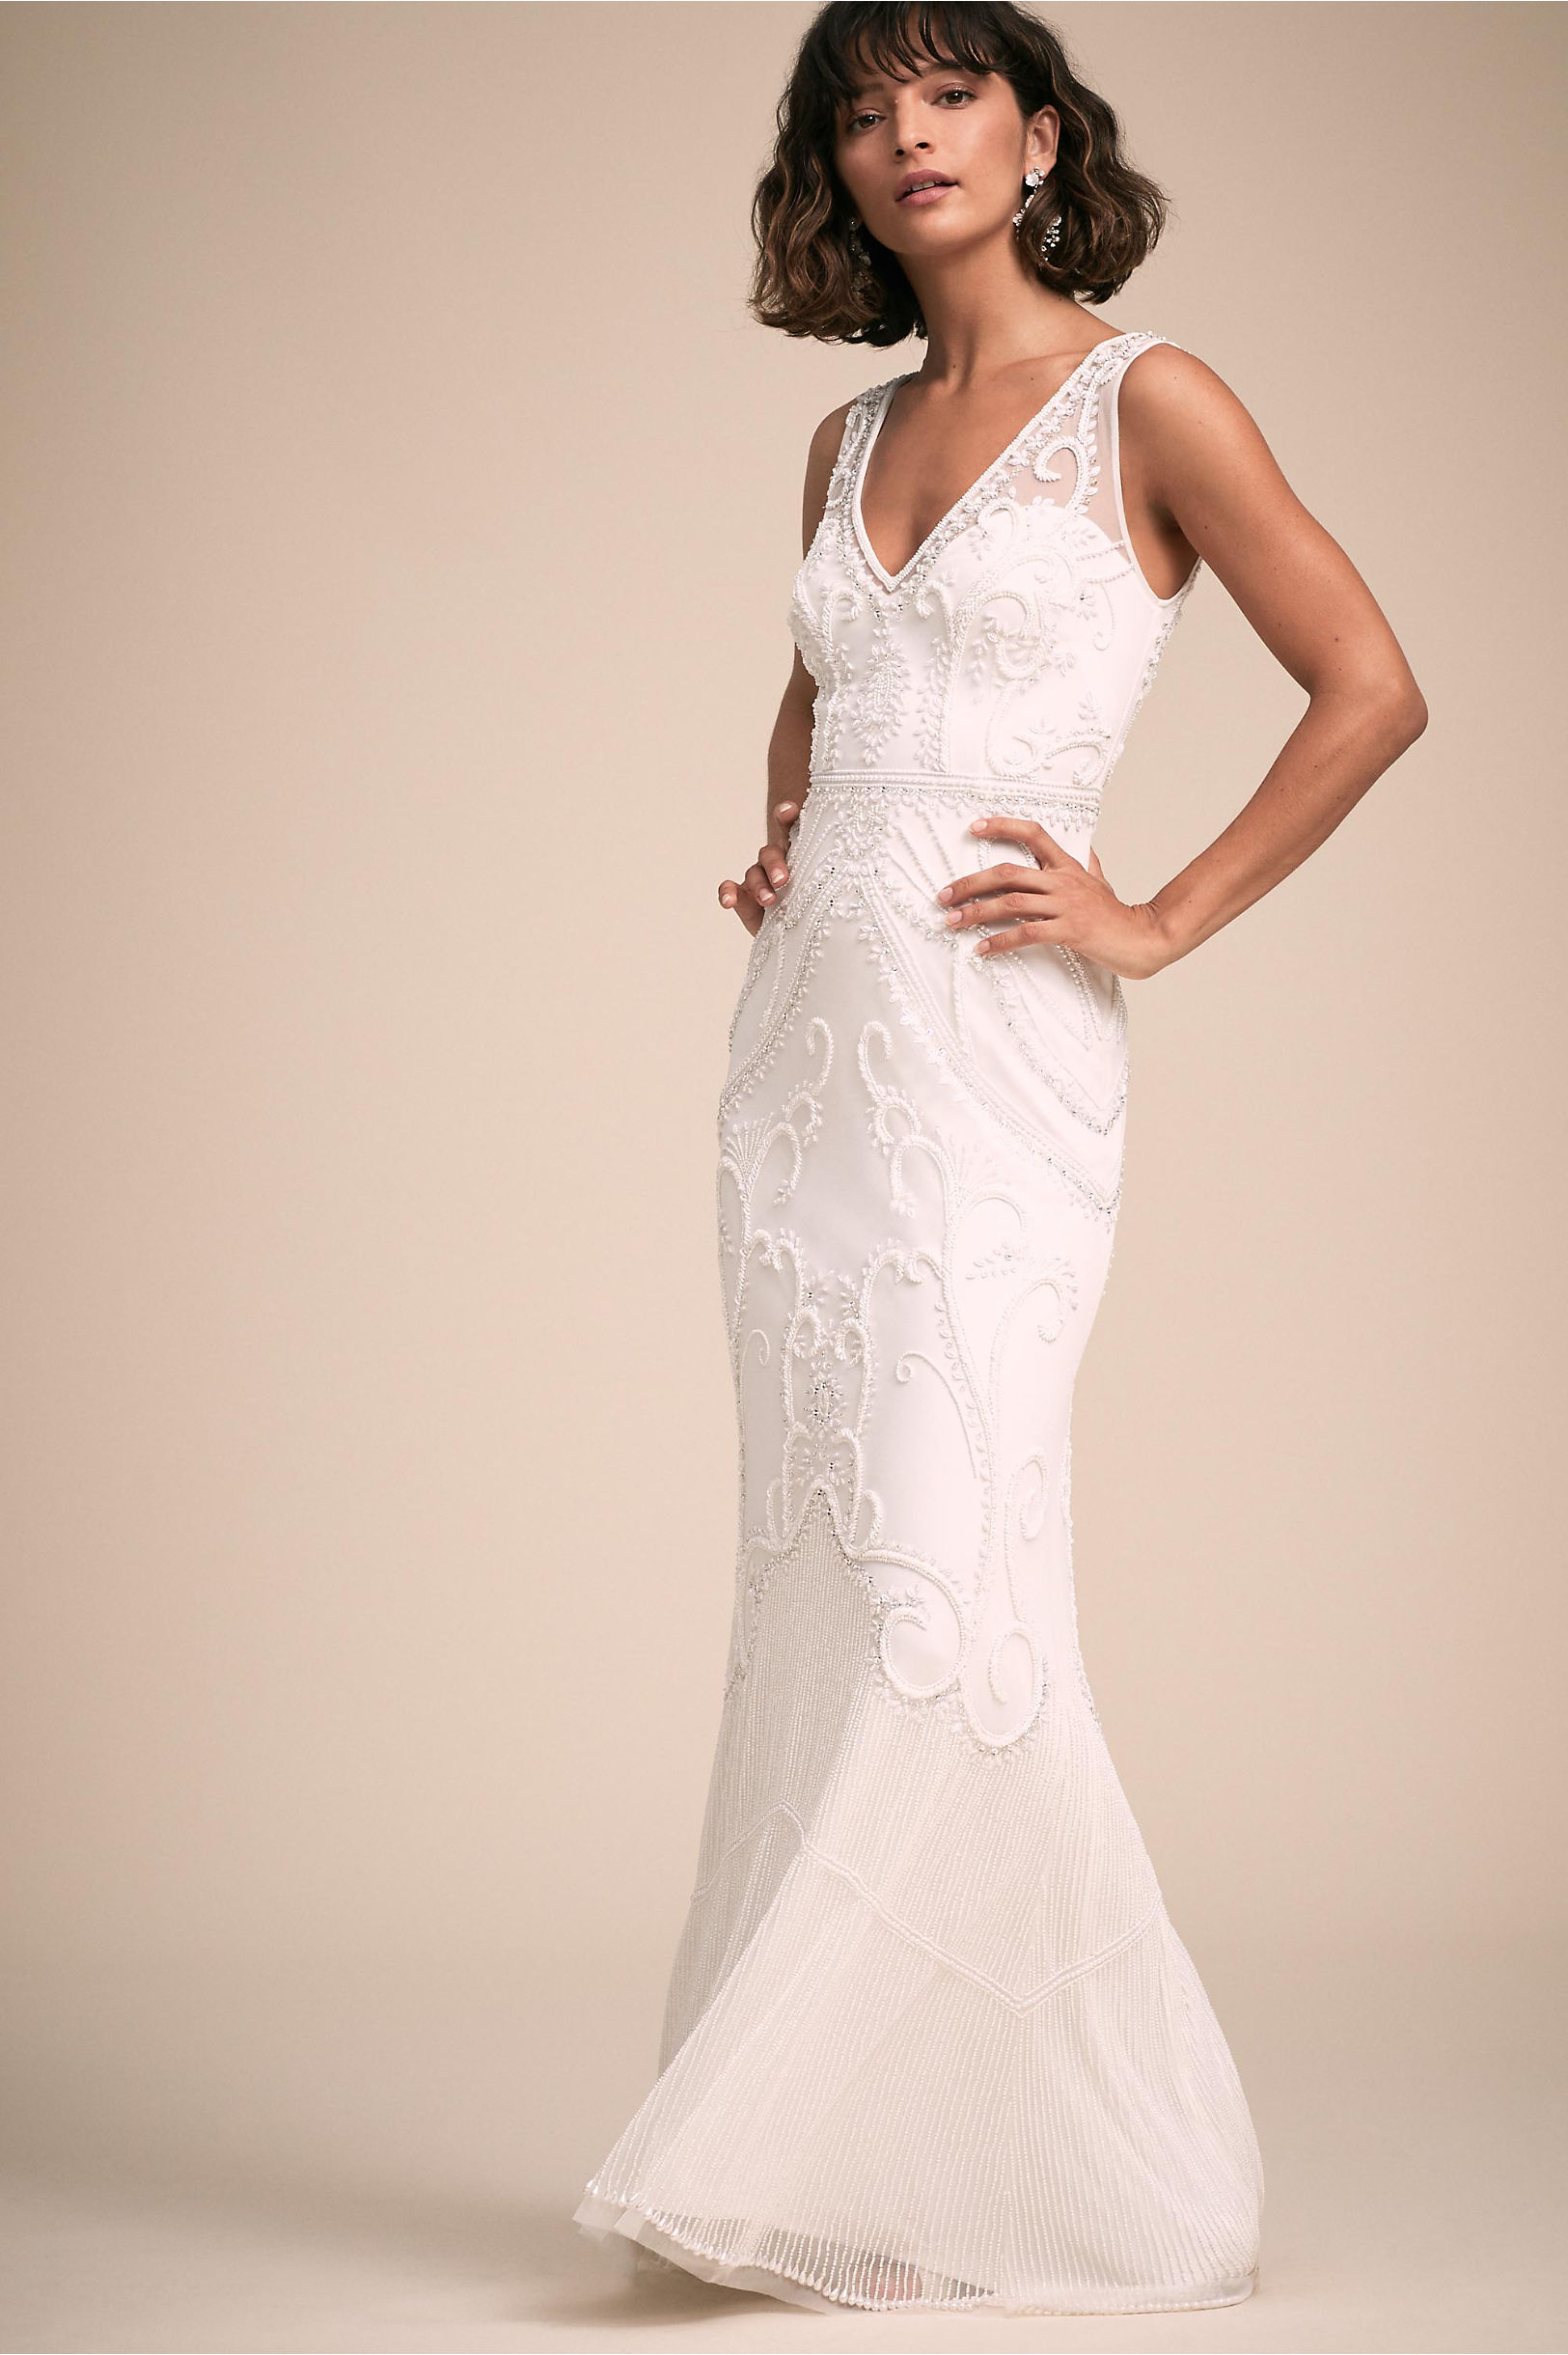 sorrento dress - $450.00